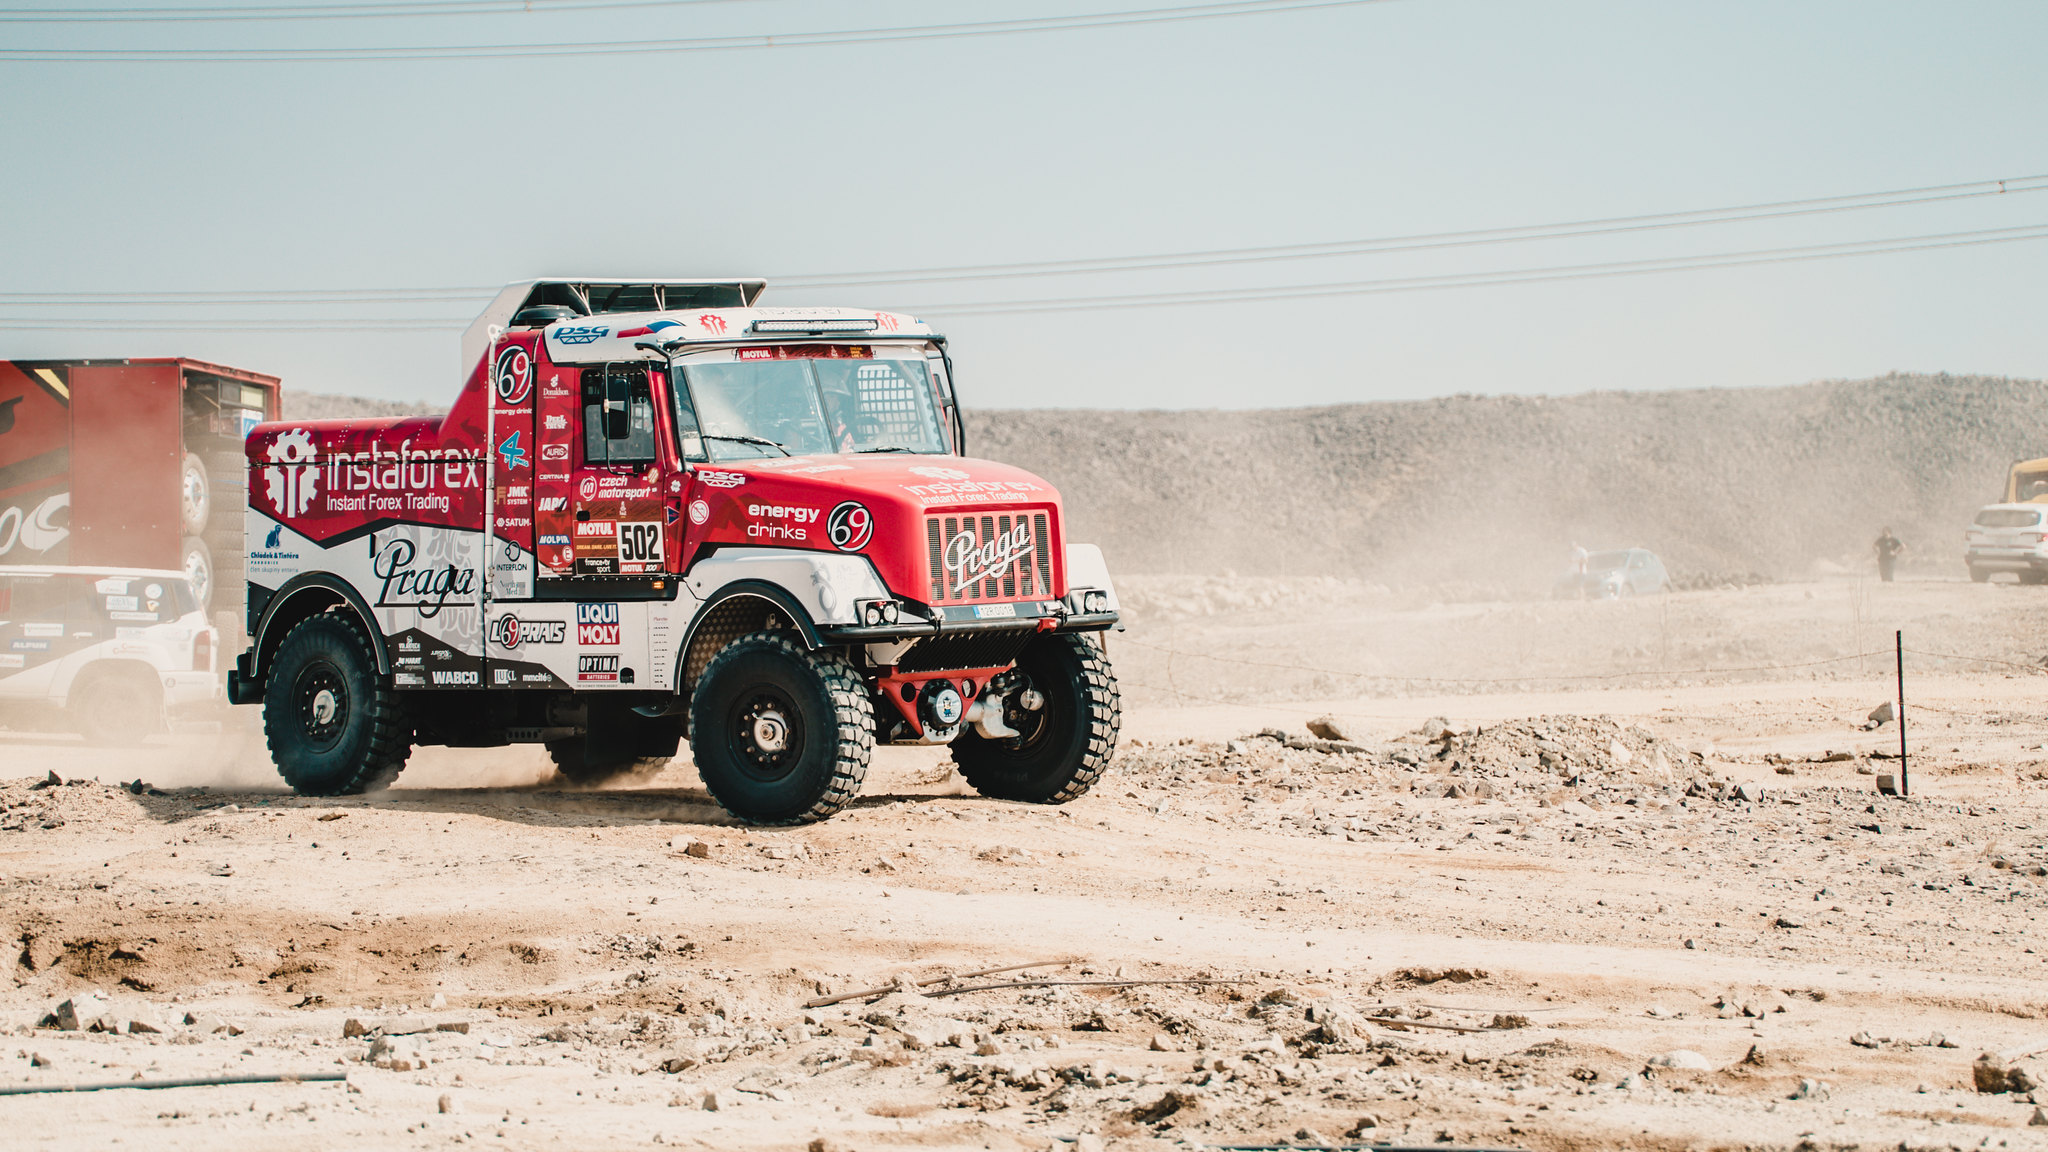 Loprais' Praga has successfully completed its first race kilometres at Dakar